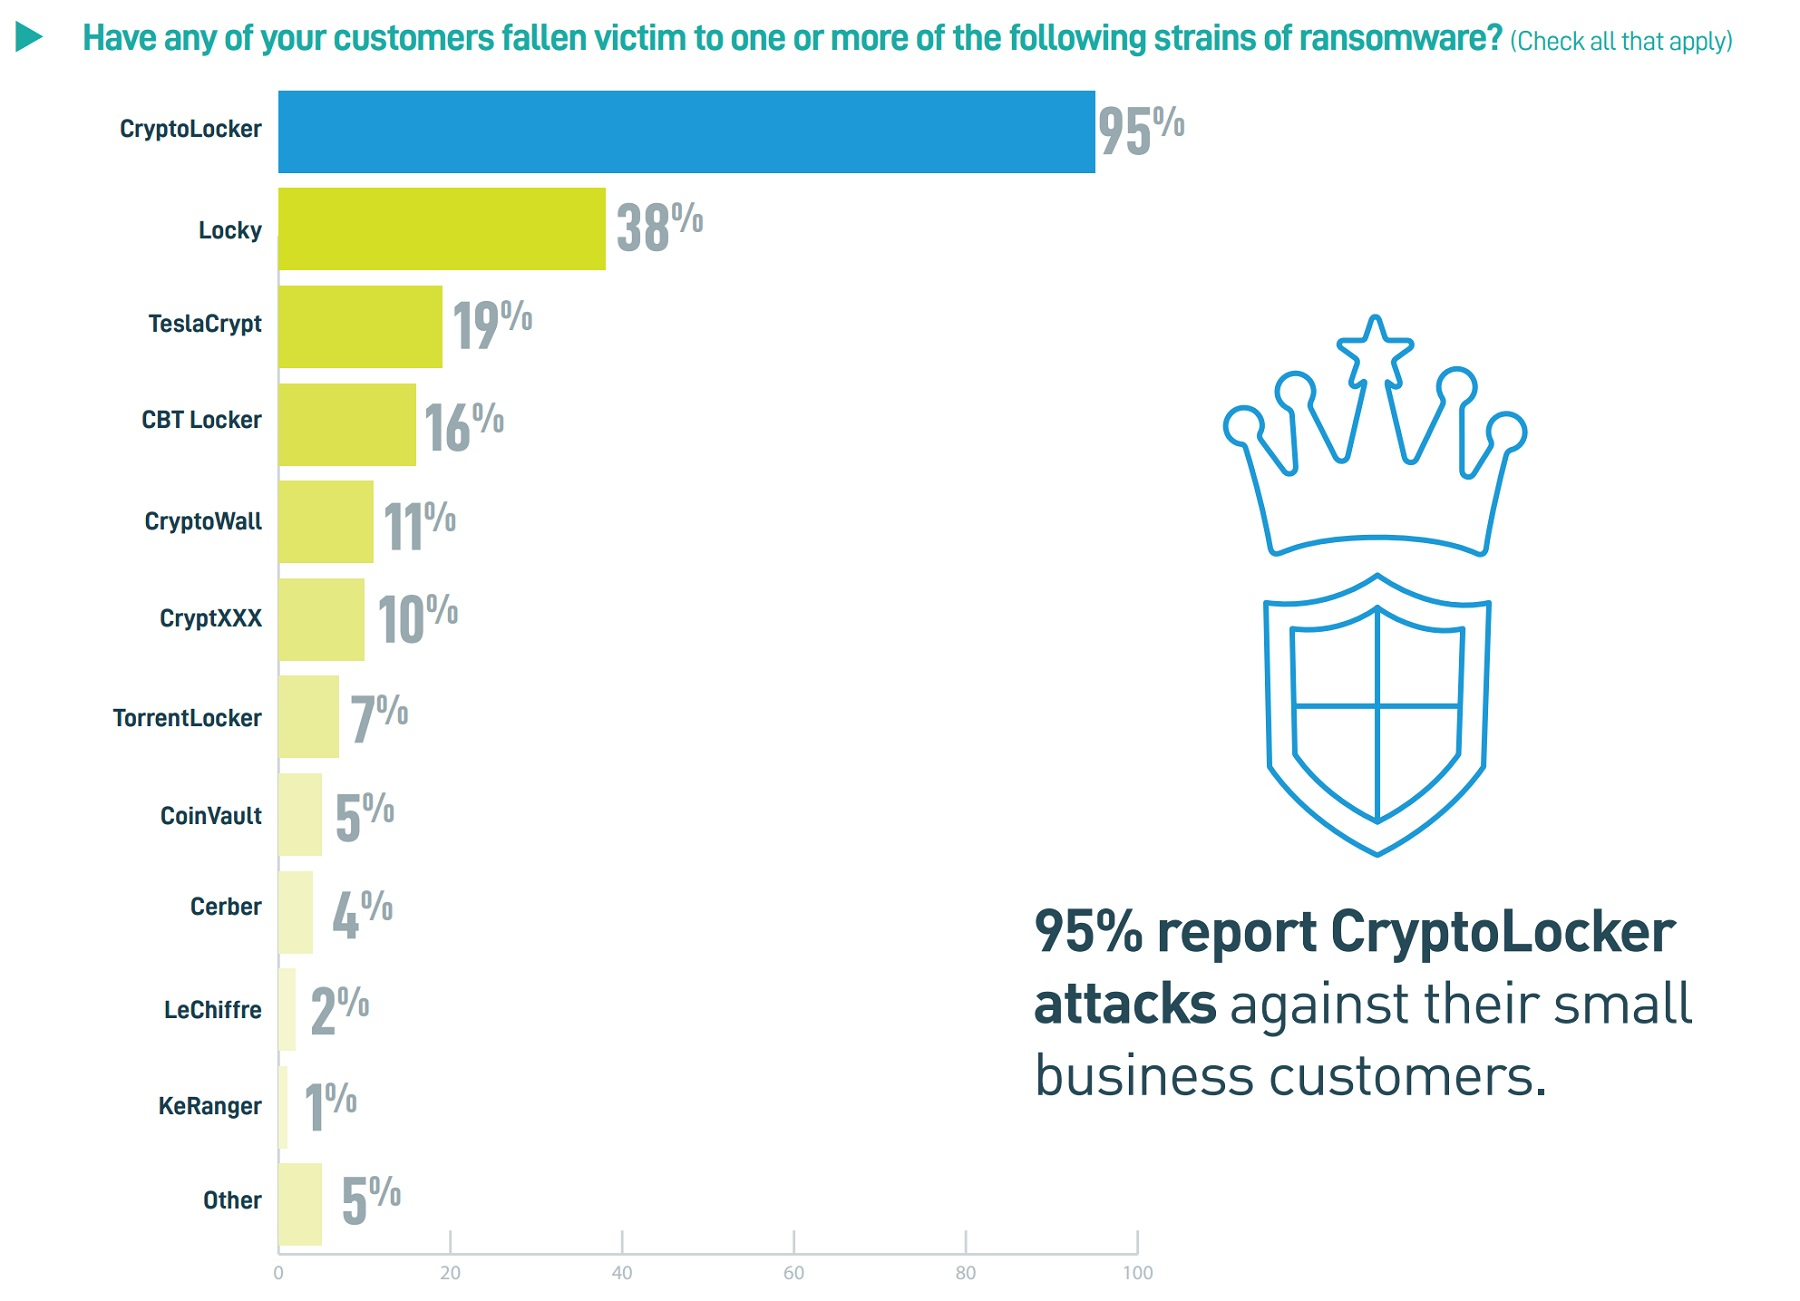 SMBs are losing an estimated $75bn a year to Ransomware, new research finds TechNative